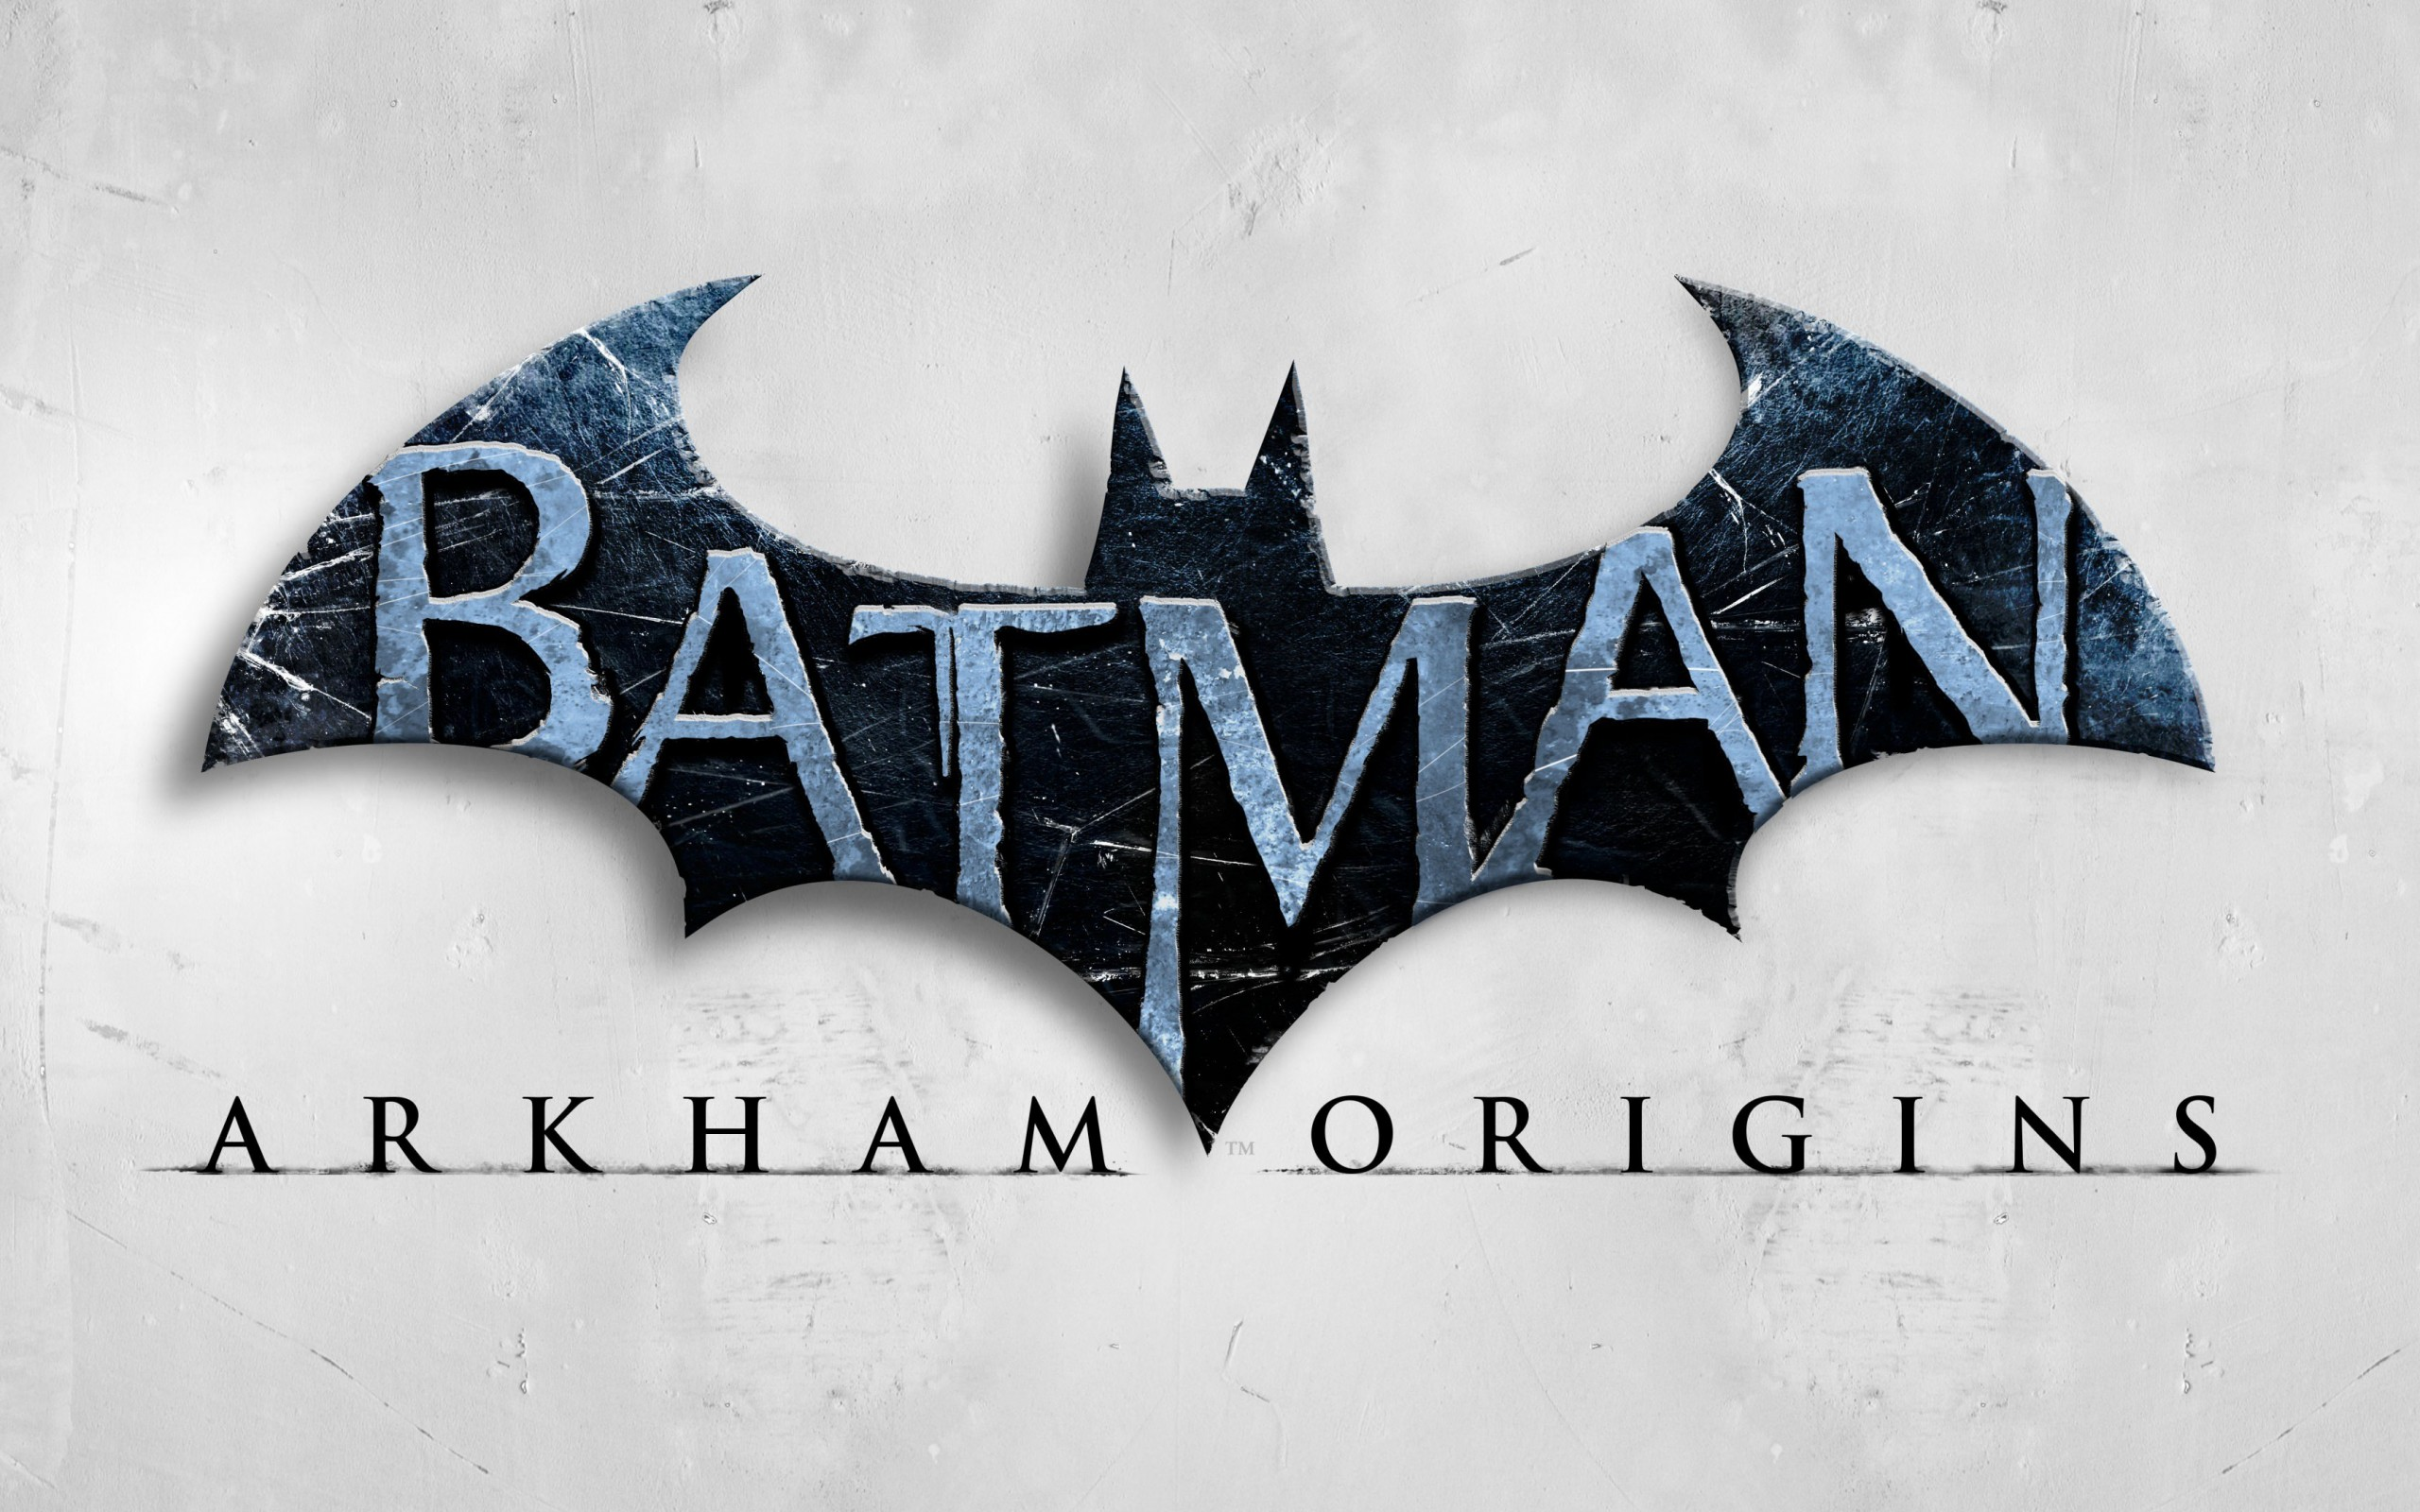 Batman Arkham Origins Wallpaper for Desktop 2560x1600